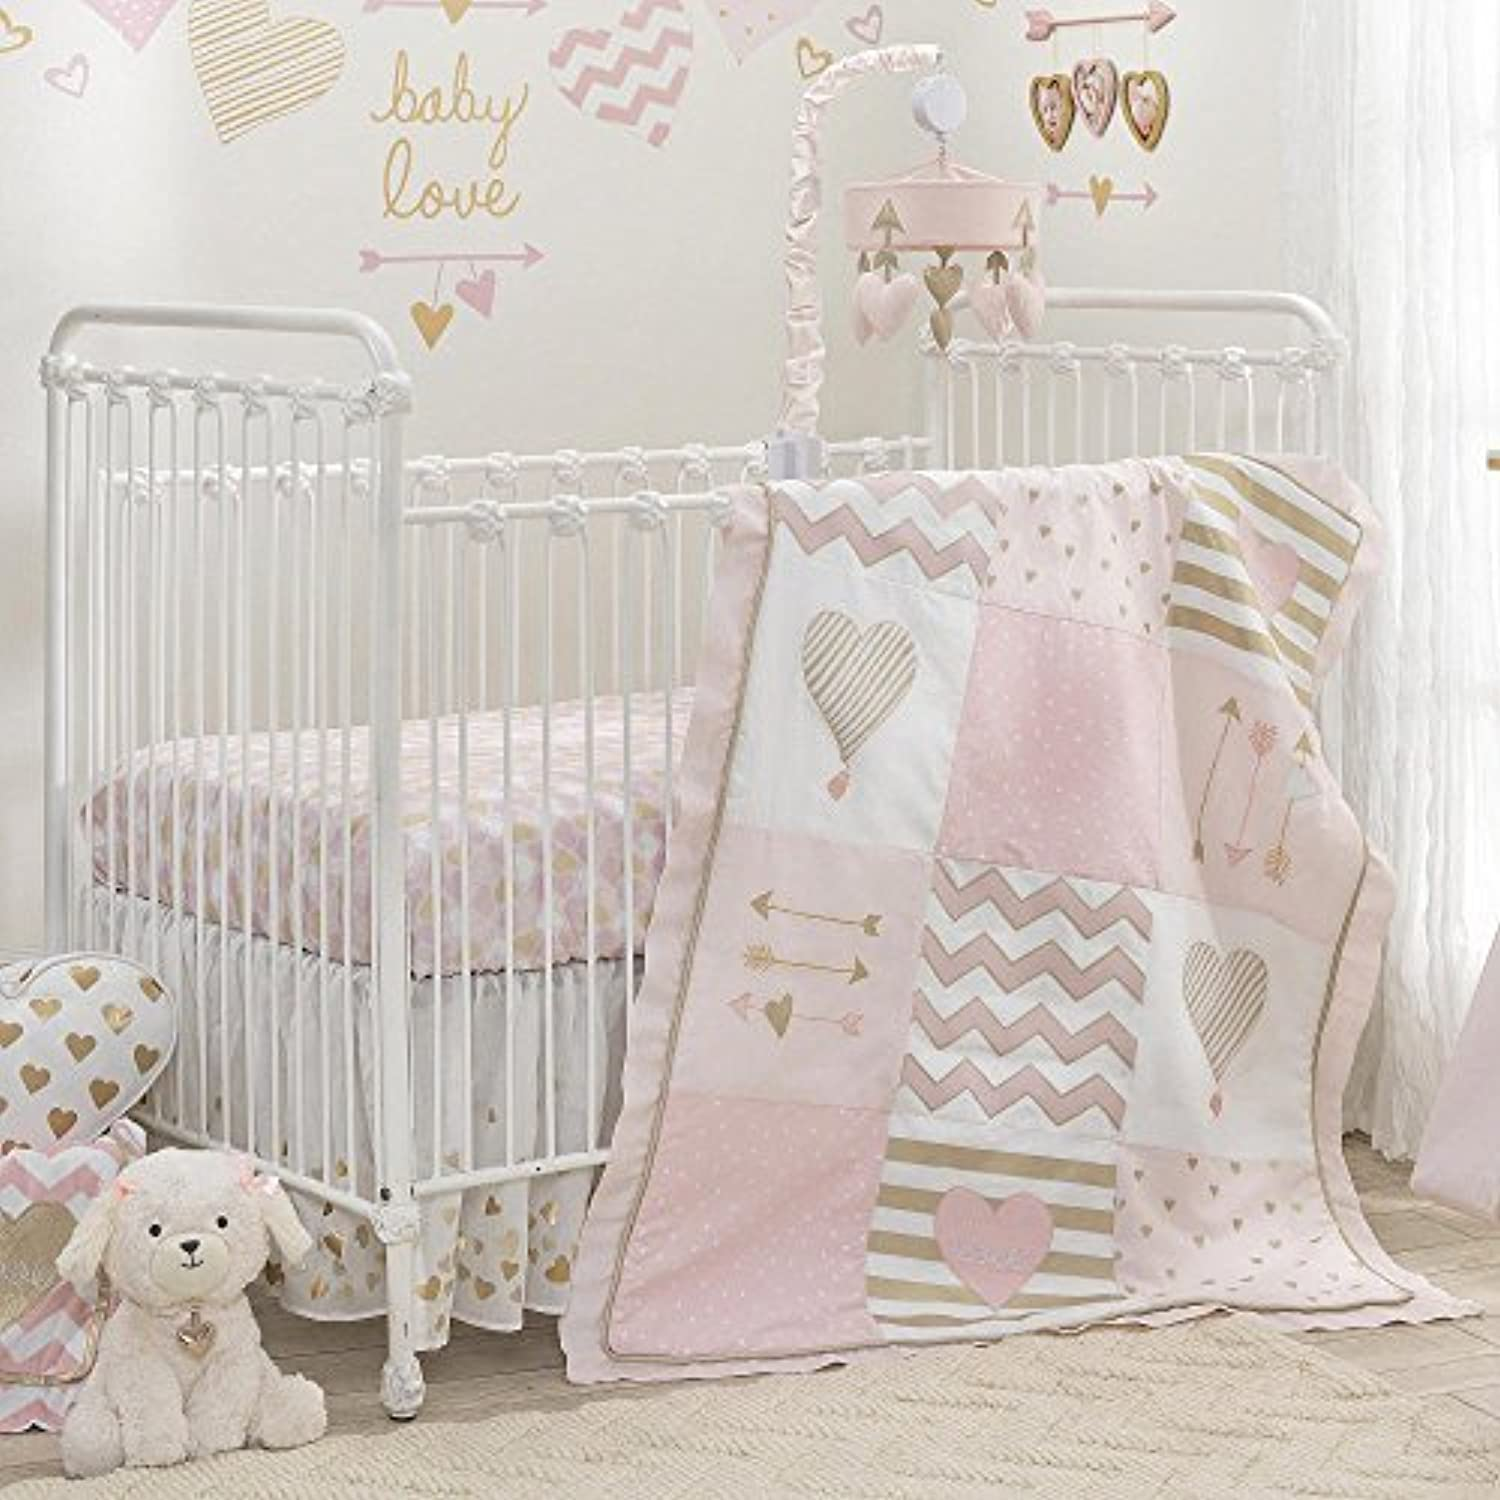 Lambs & Ivy Baby Love Pink/Gold Heart 4 Piece Crib Bedding Set [並行輸入品]